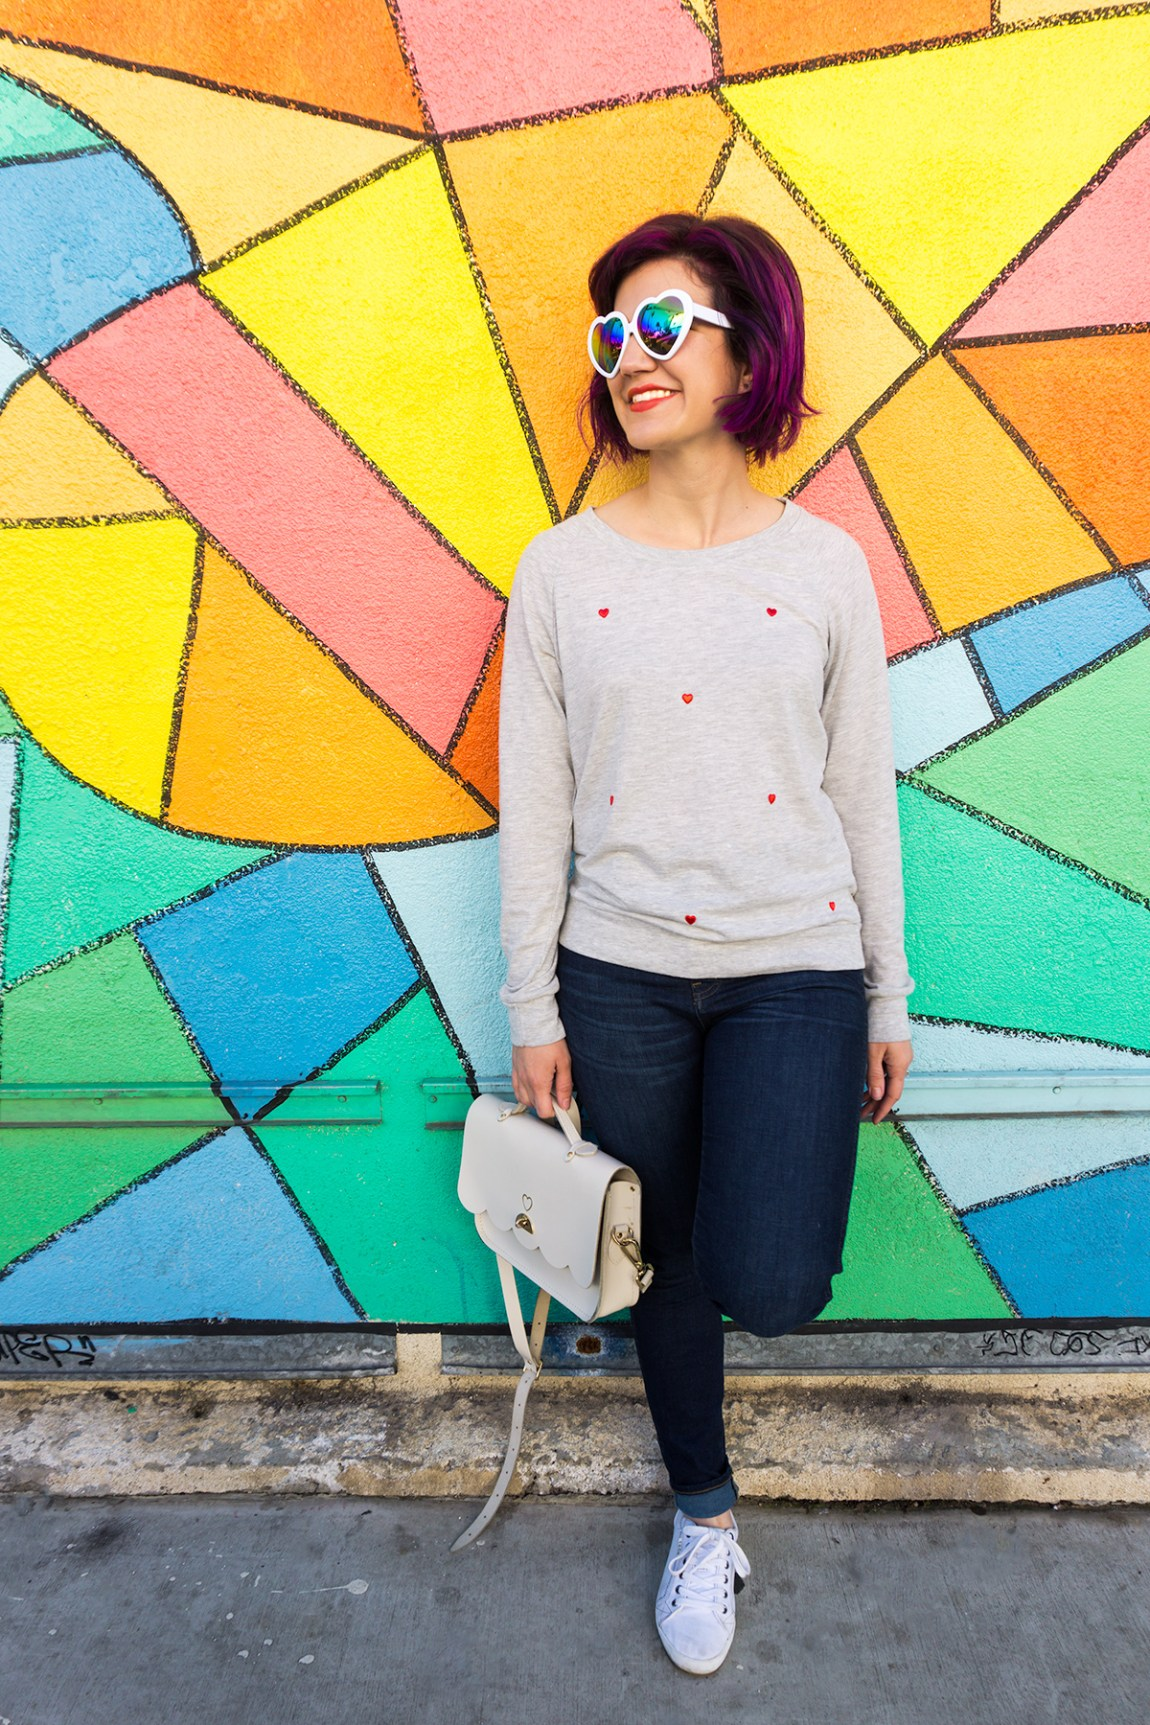 Make your own Anthropologie Heart-Patched Pullover shirt in minutes and for a third of the price! (Click through for video tutorial)